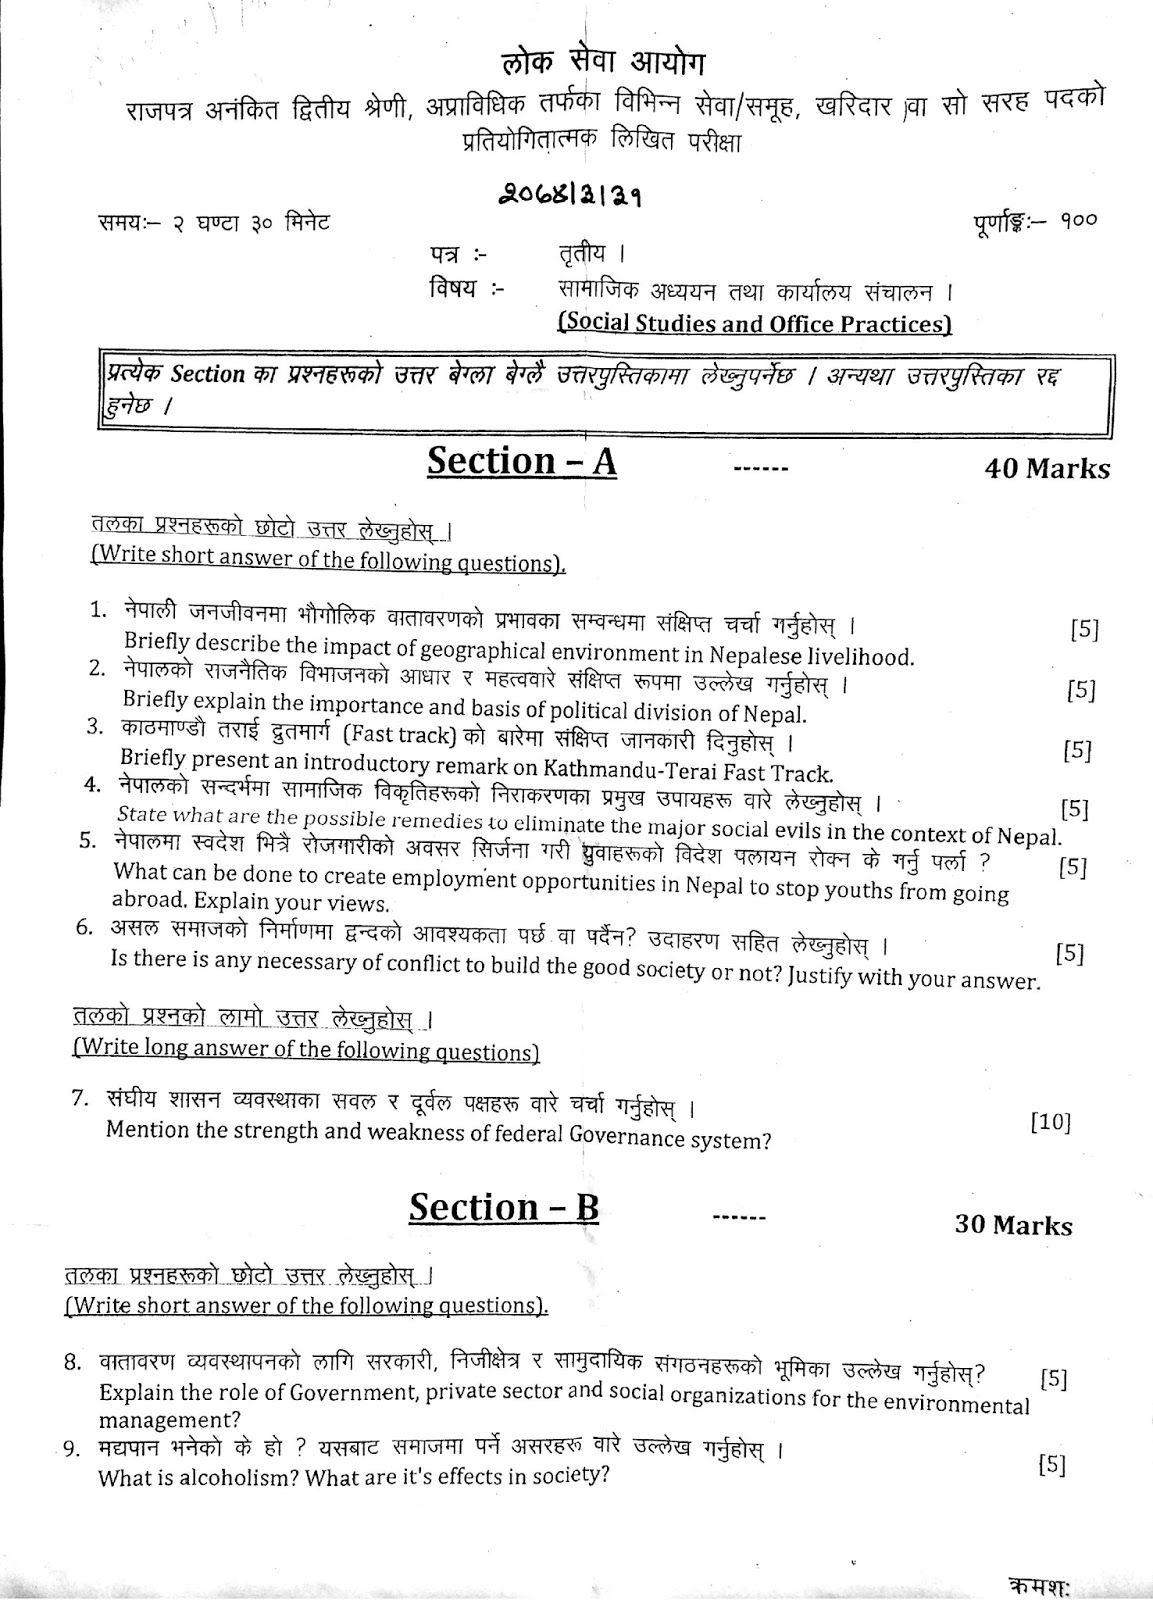 Kharidar - Non Gazetted Second Class - Third Paper 2074-03-31